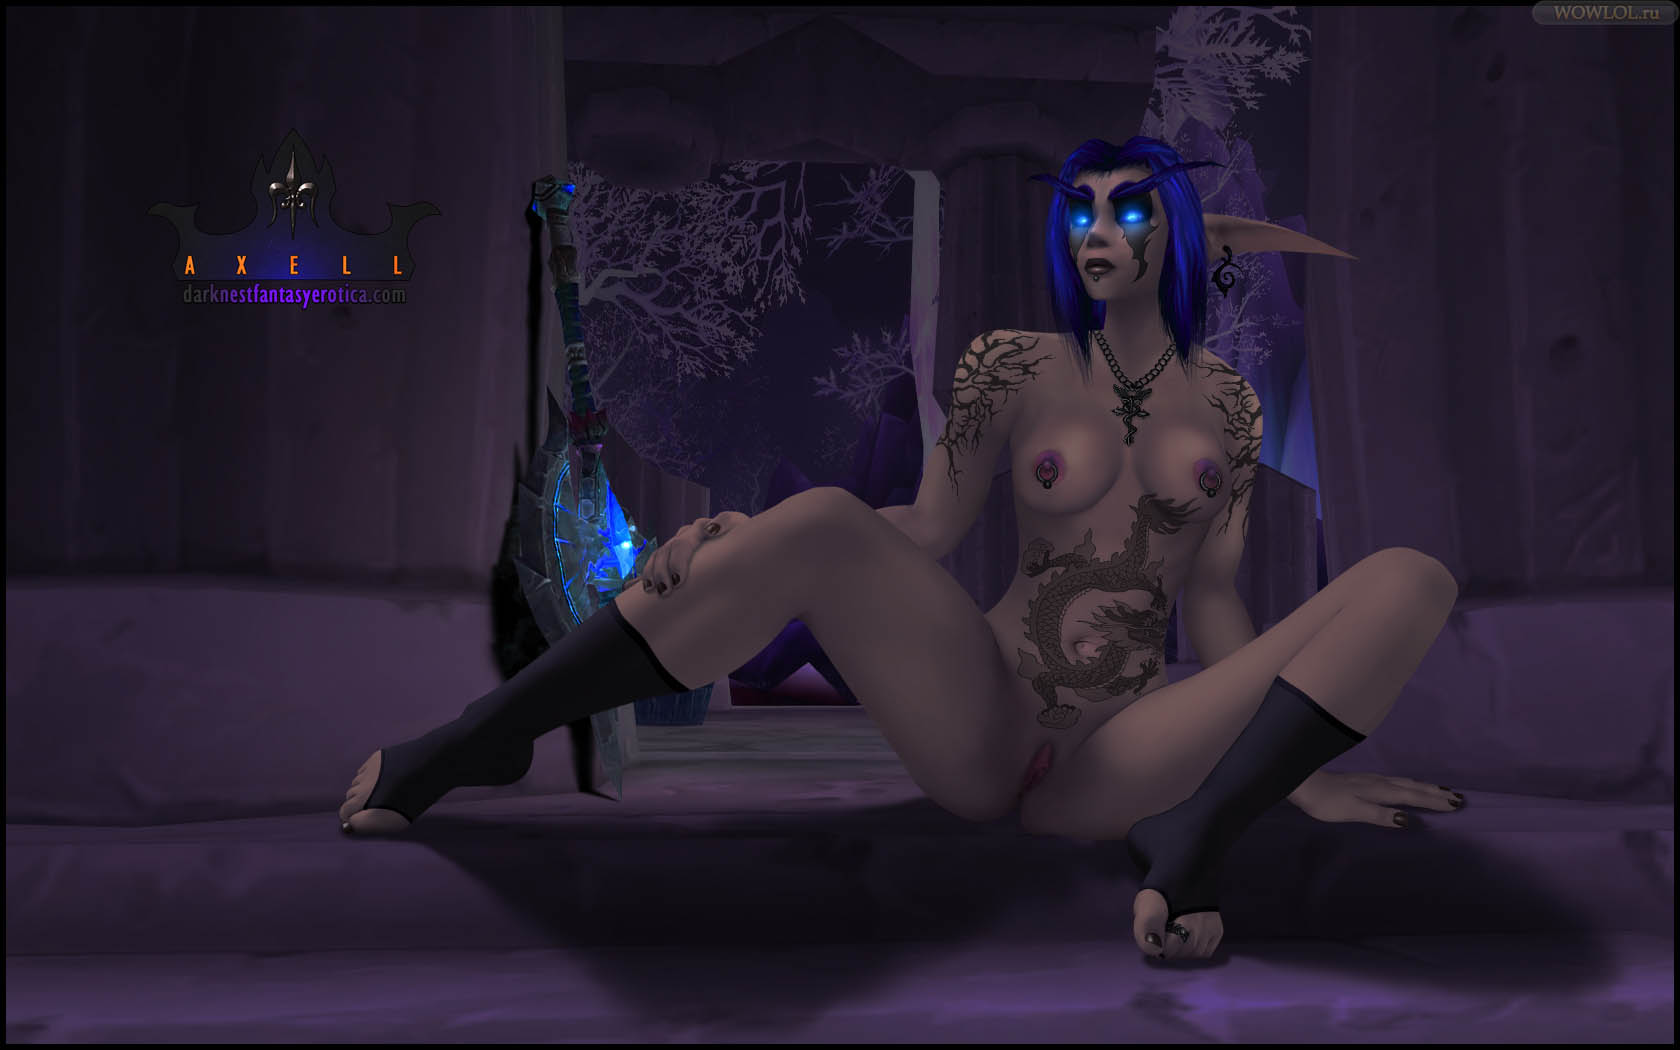 Naked world of warcraft girls having sex  xxx pictures